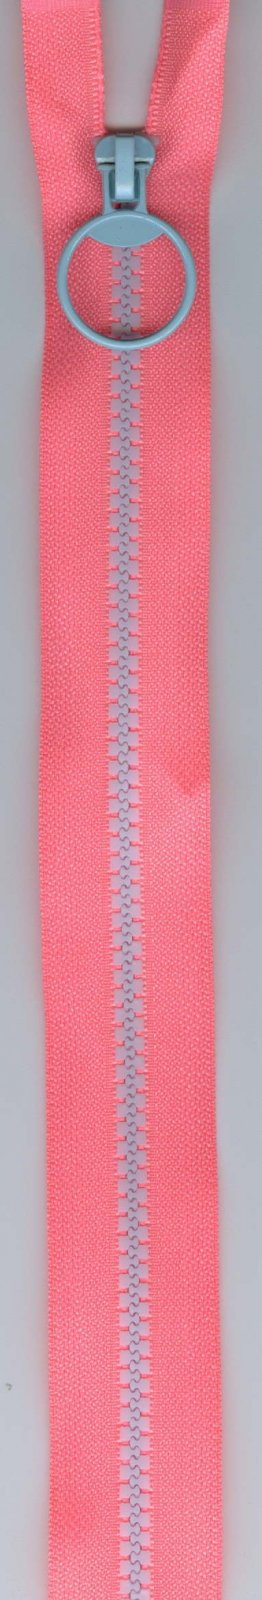 16 Separating Zipper #5 - Neon PInk with Blue Teeth